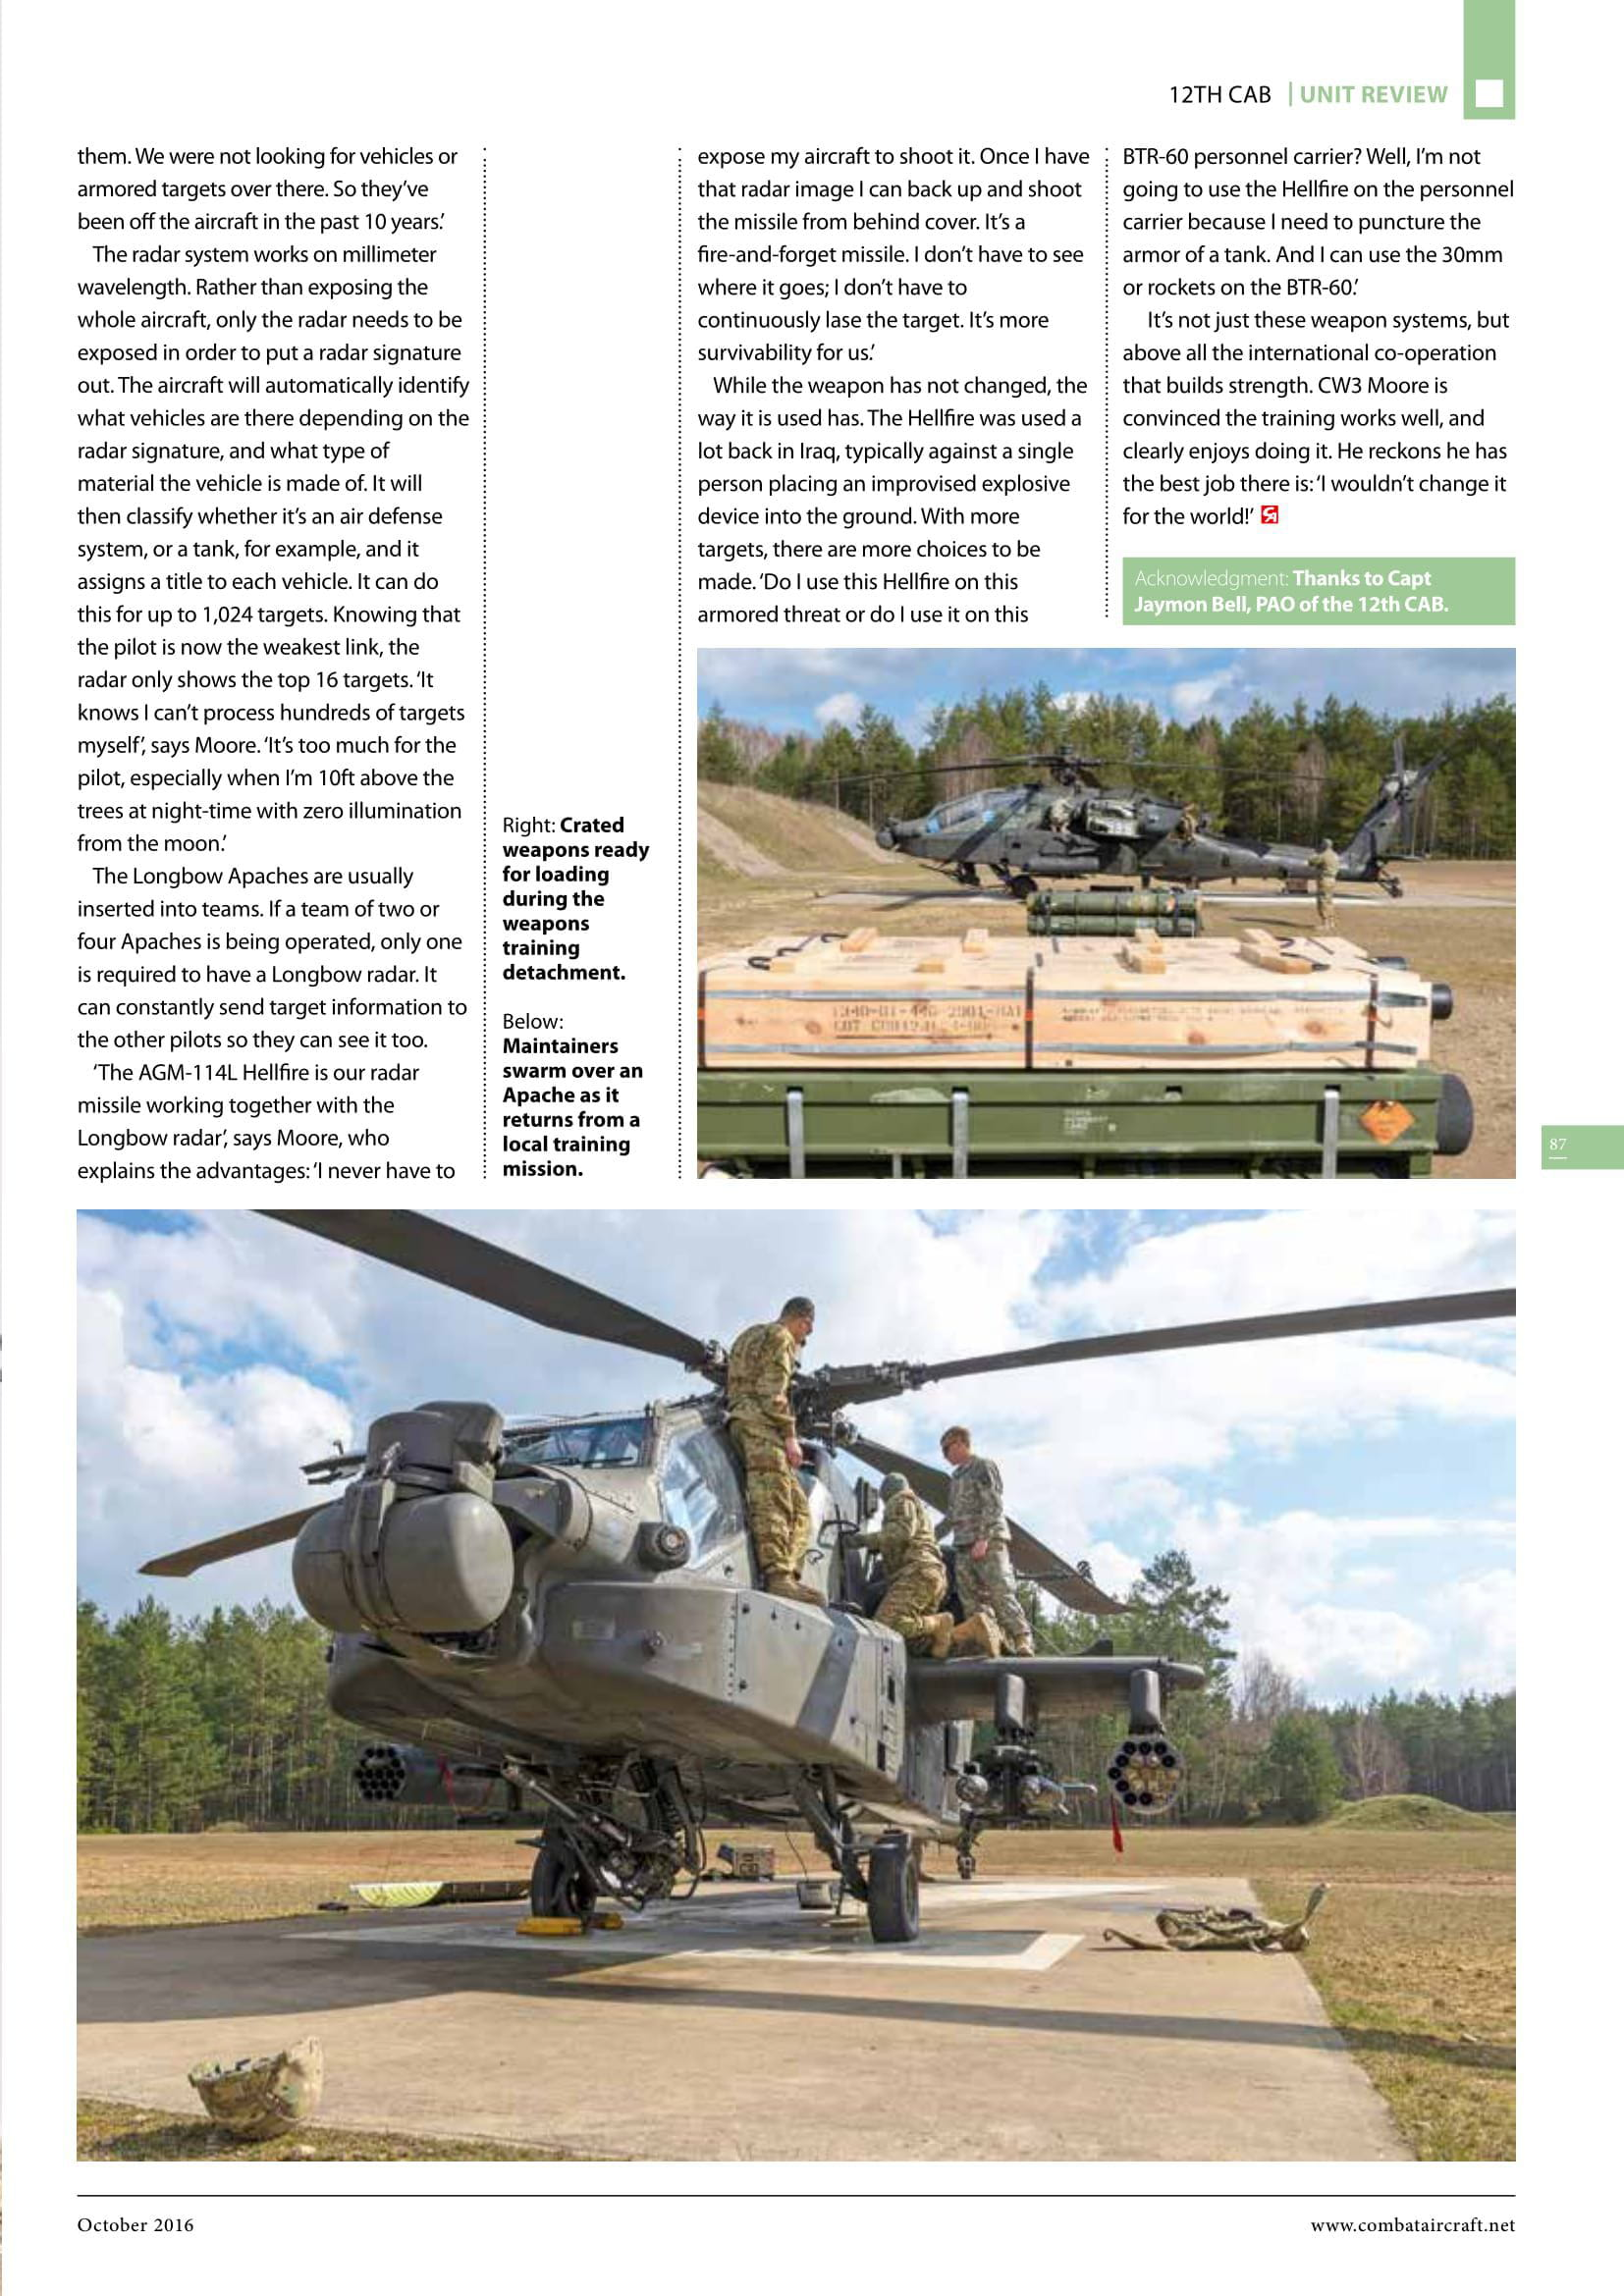 Combat Aircraft (UK)_US Army Apaches in Europe-7